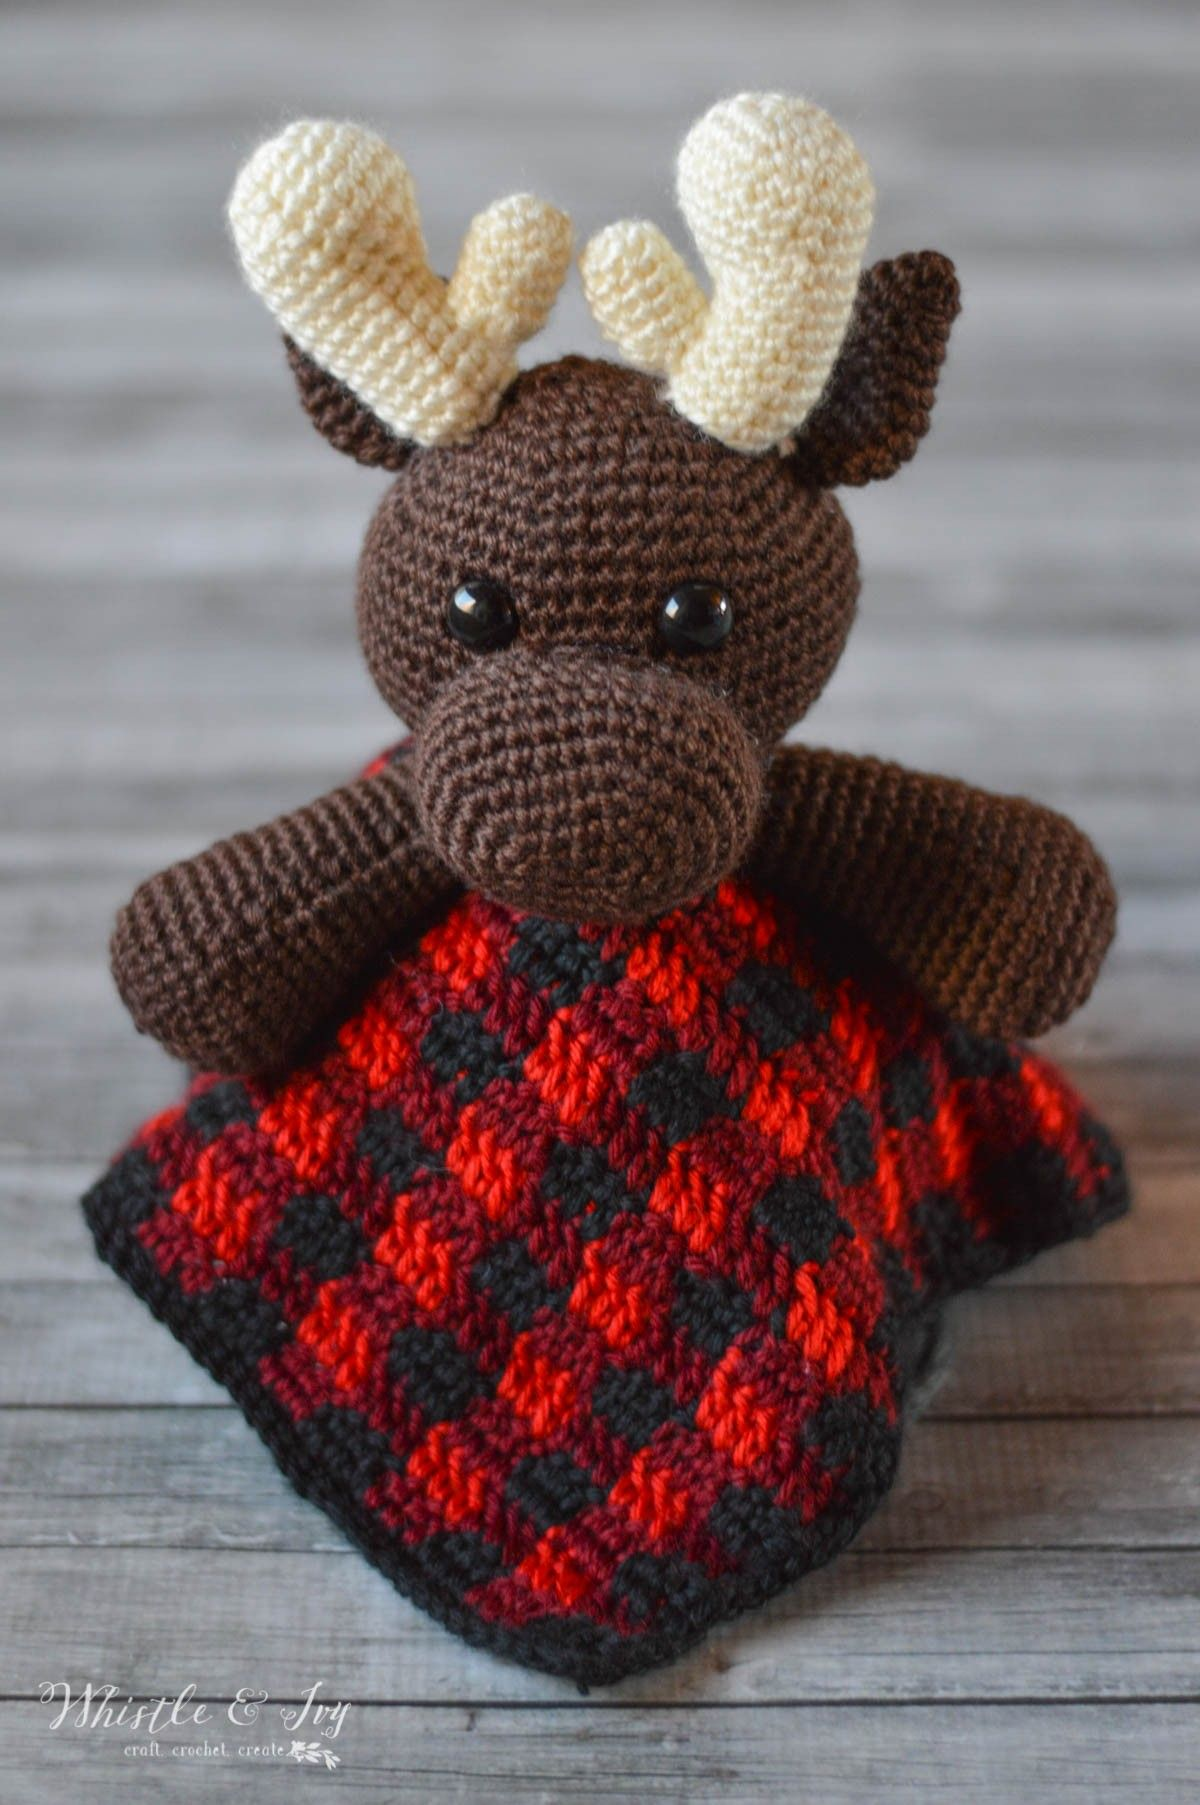 Plaid Moose Lovey - whistle and ivy Knit Crochet d804c91a1a12